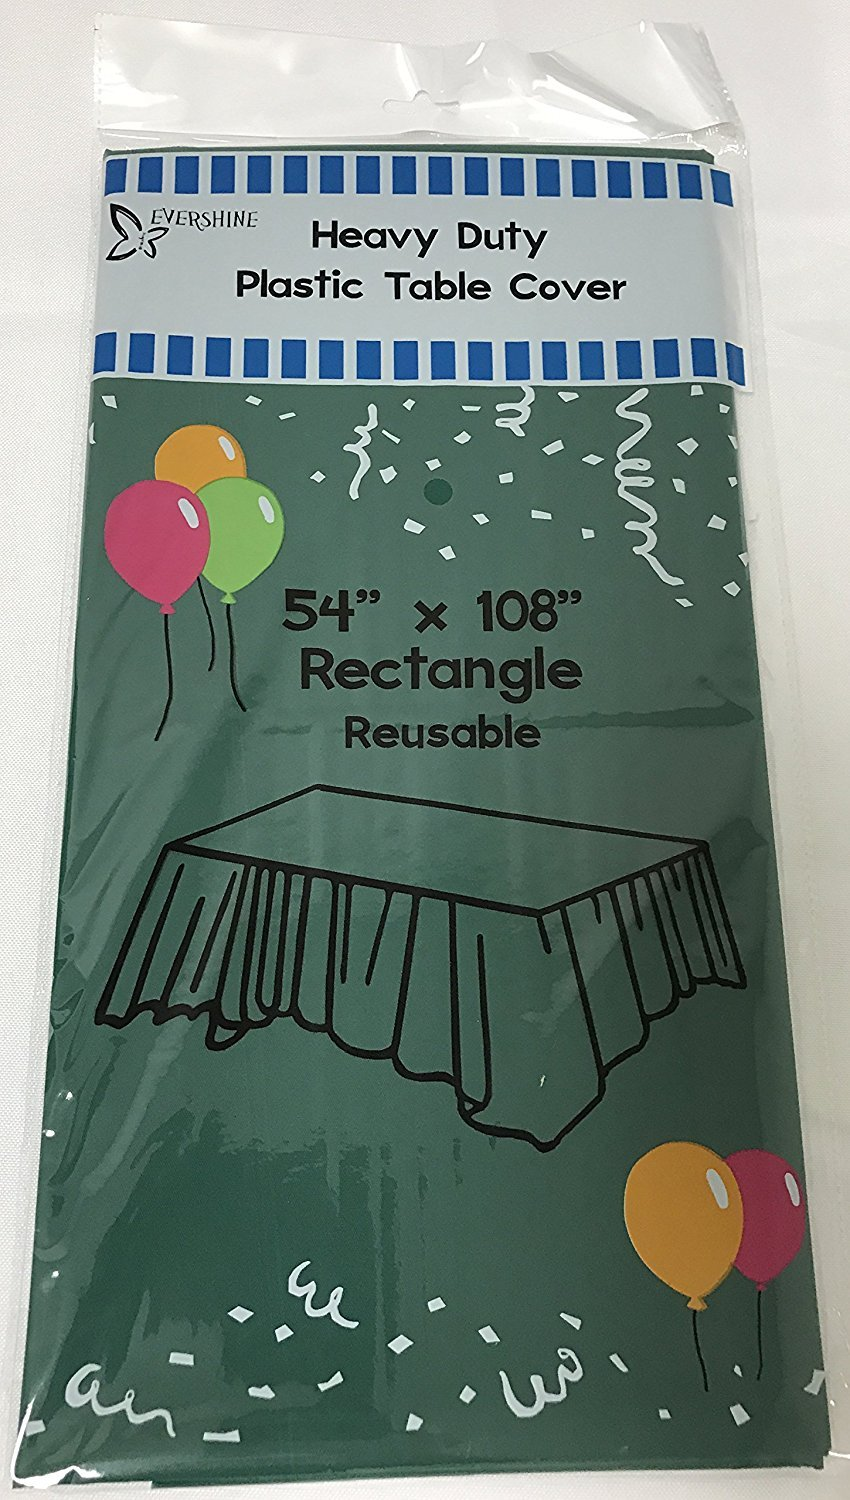 (12-pack) Heavy Duty Plastic Table Covers